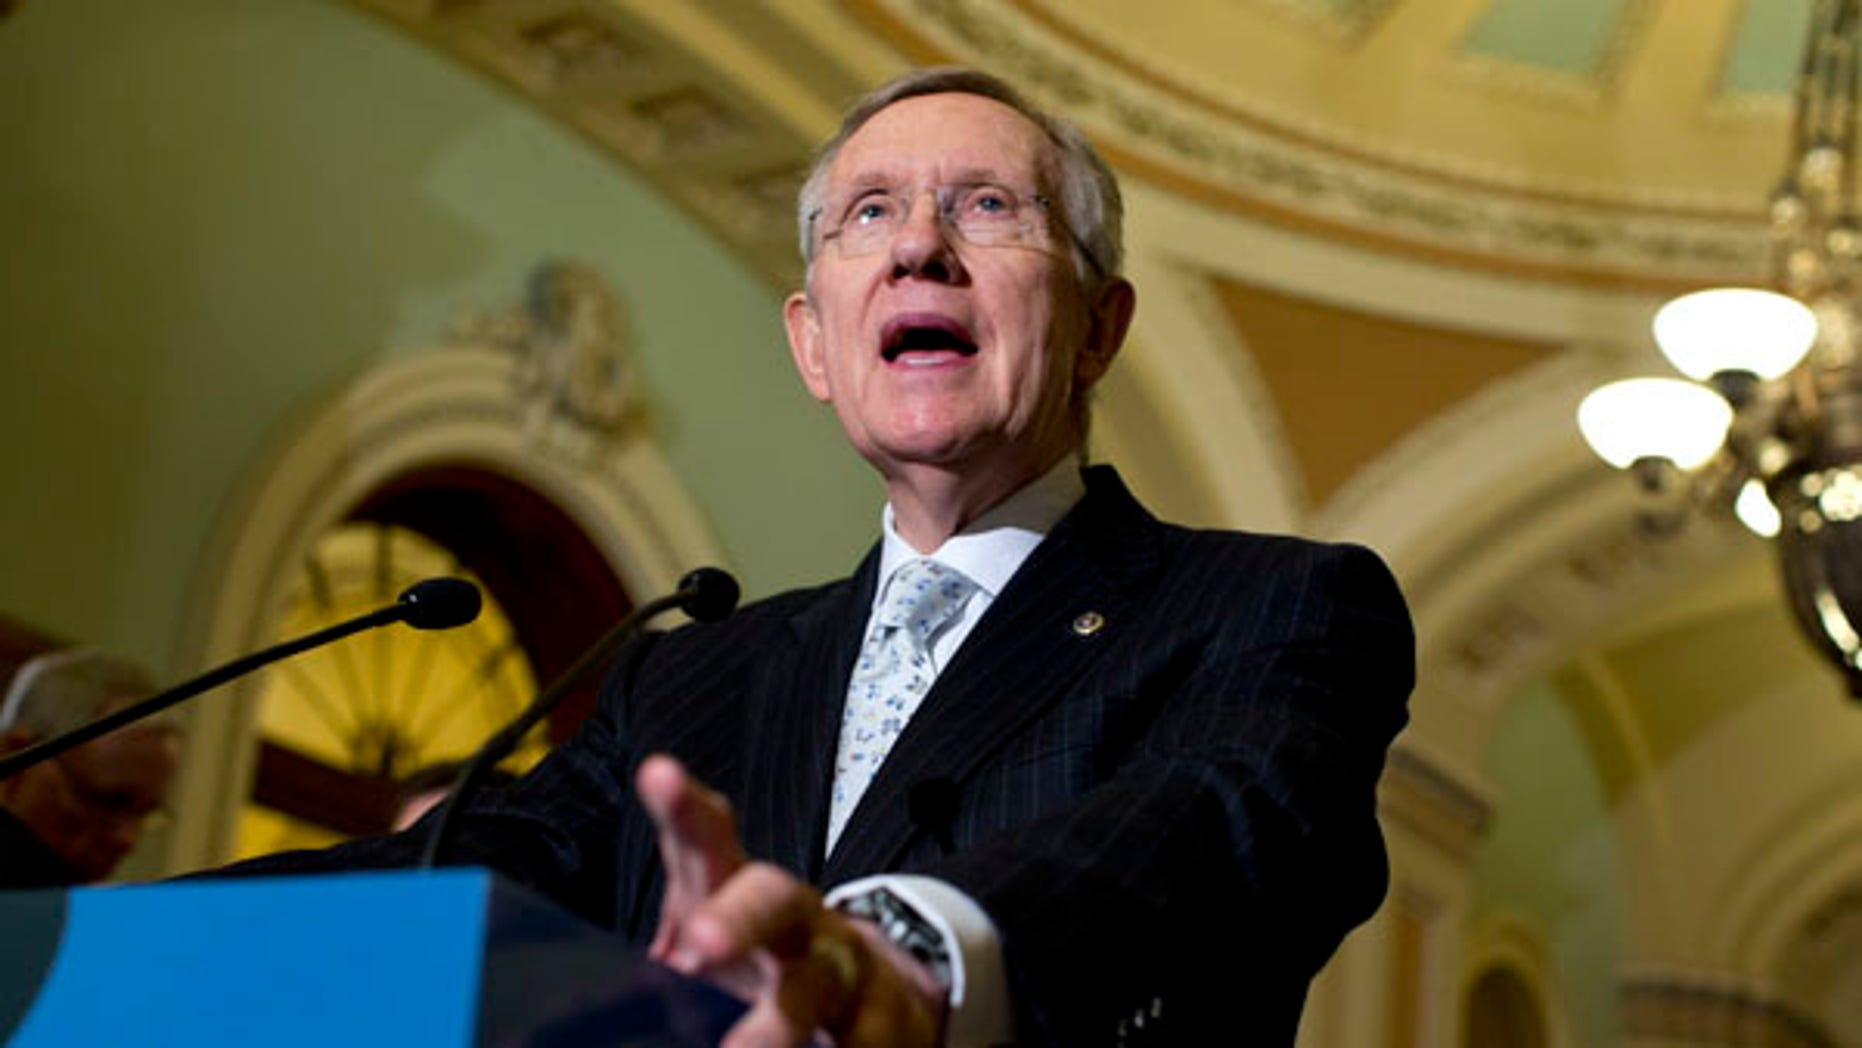 May 21, 2013: Senate Majority Leader Harry Reid of Nev. gestures during a news conference on Capitol Hill in Washington, following the Democratic policy luncheon.